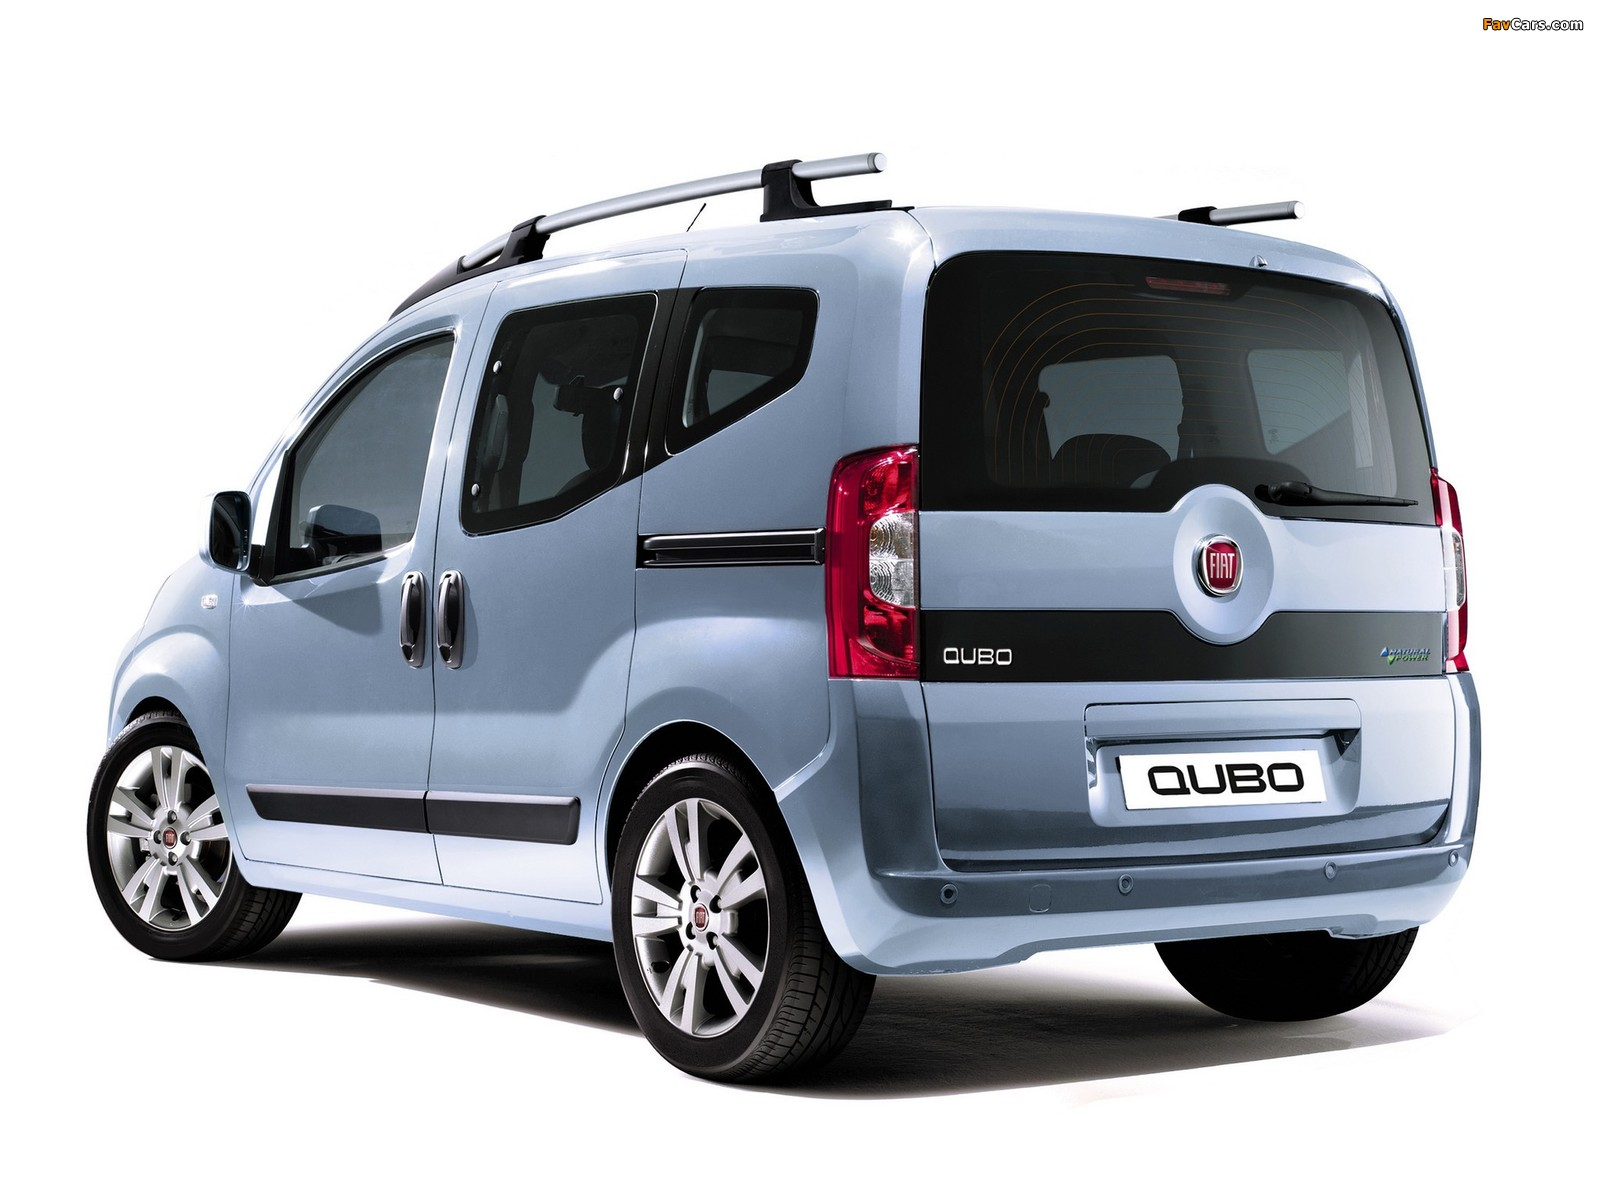 Fiat Qubo Natural Power (225) 2009 wallpapers (1600 x 1200)